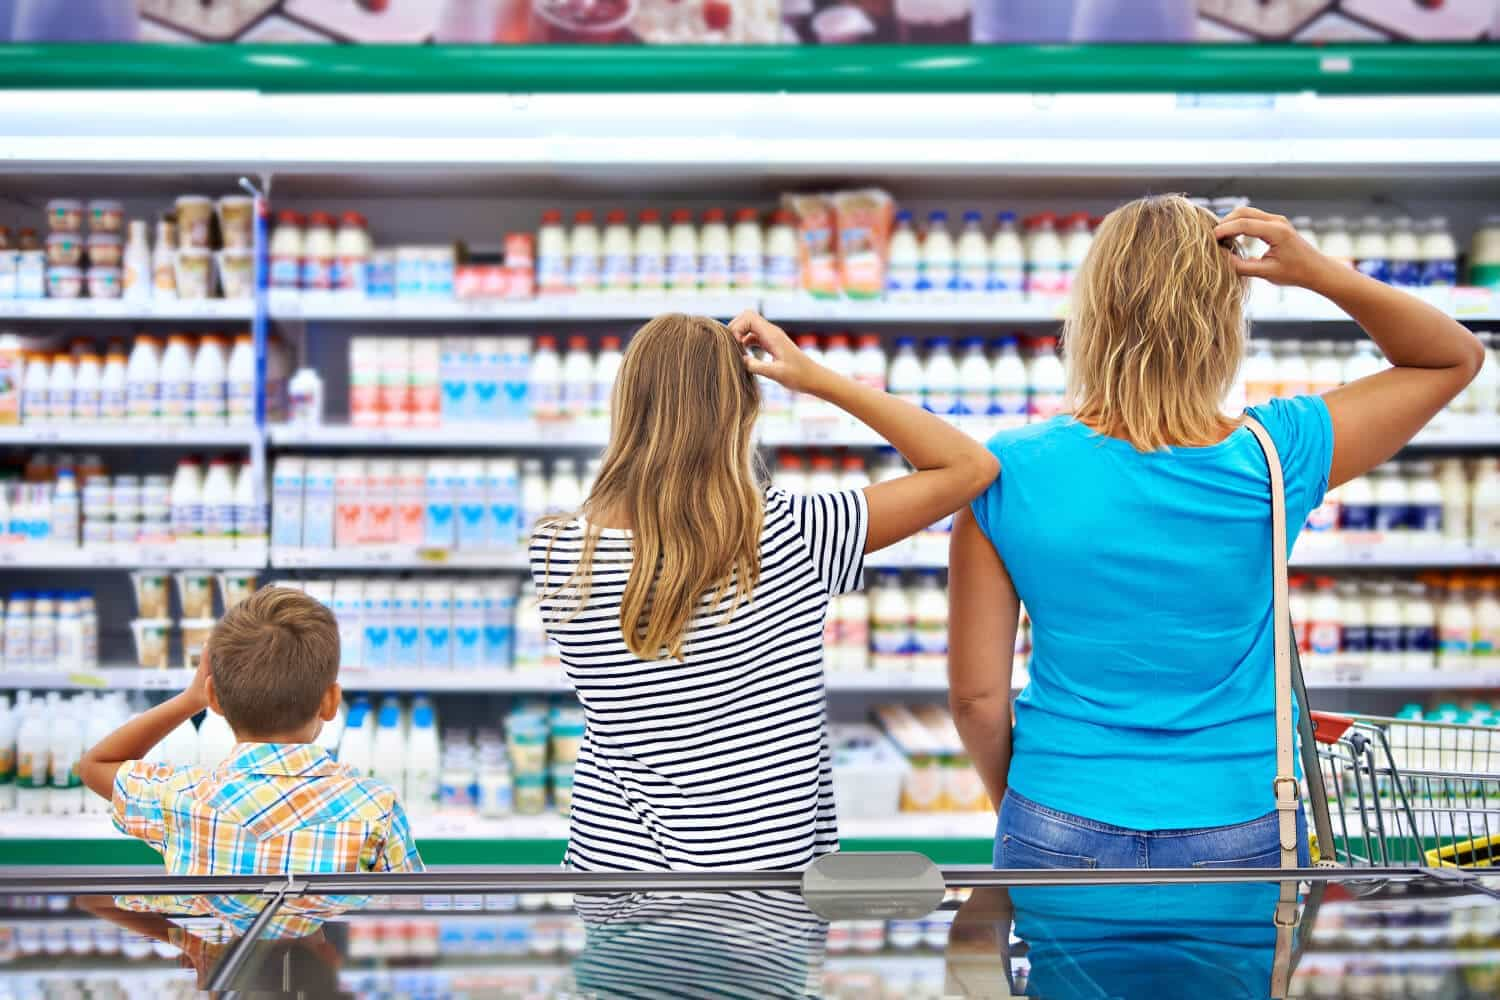 Families unsure about how to save money at the store are also unsure about how to teach kids money